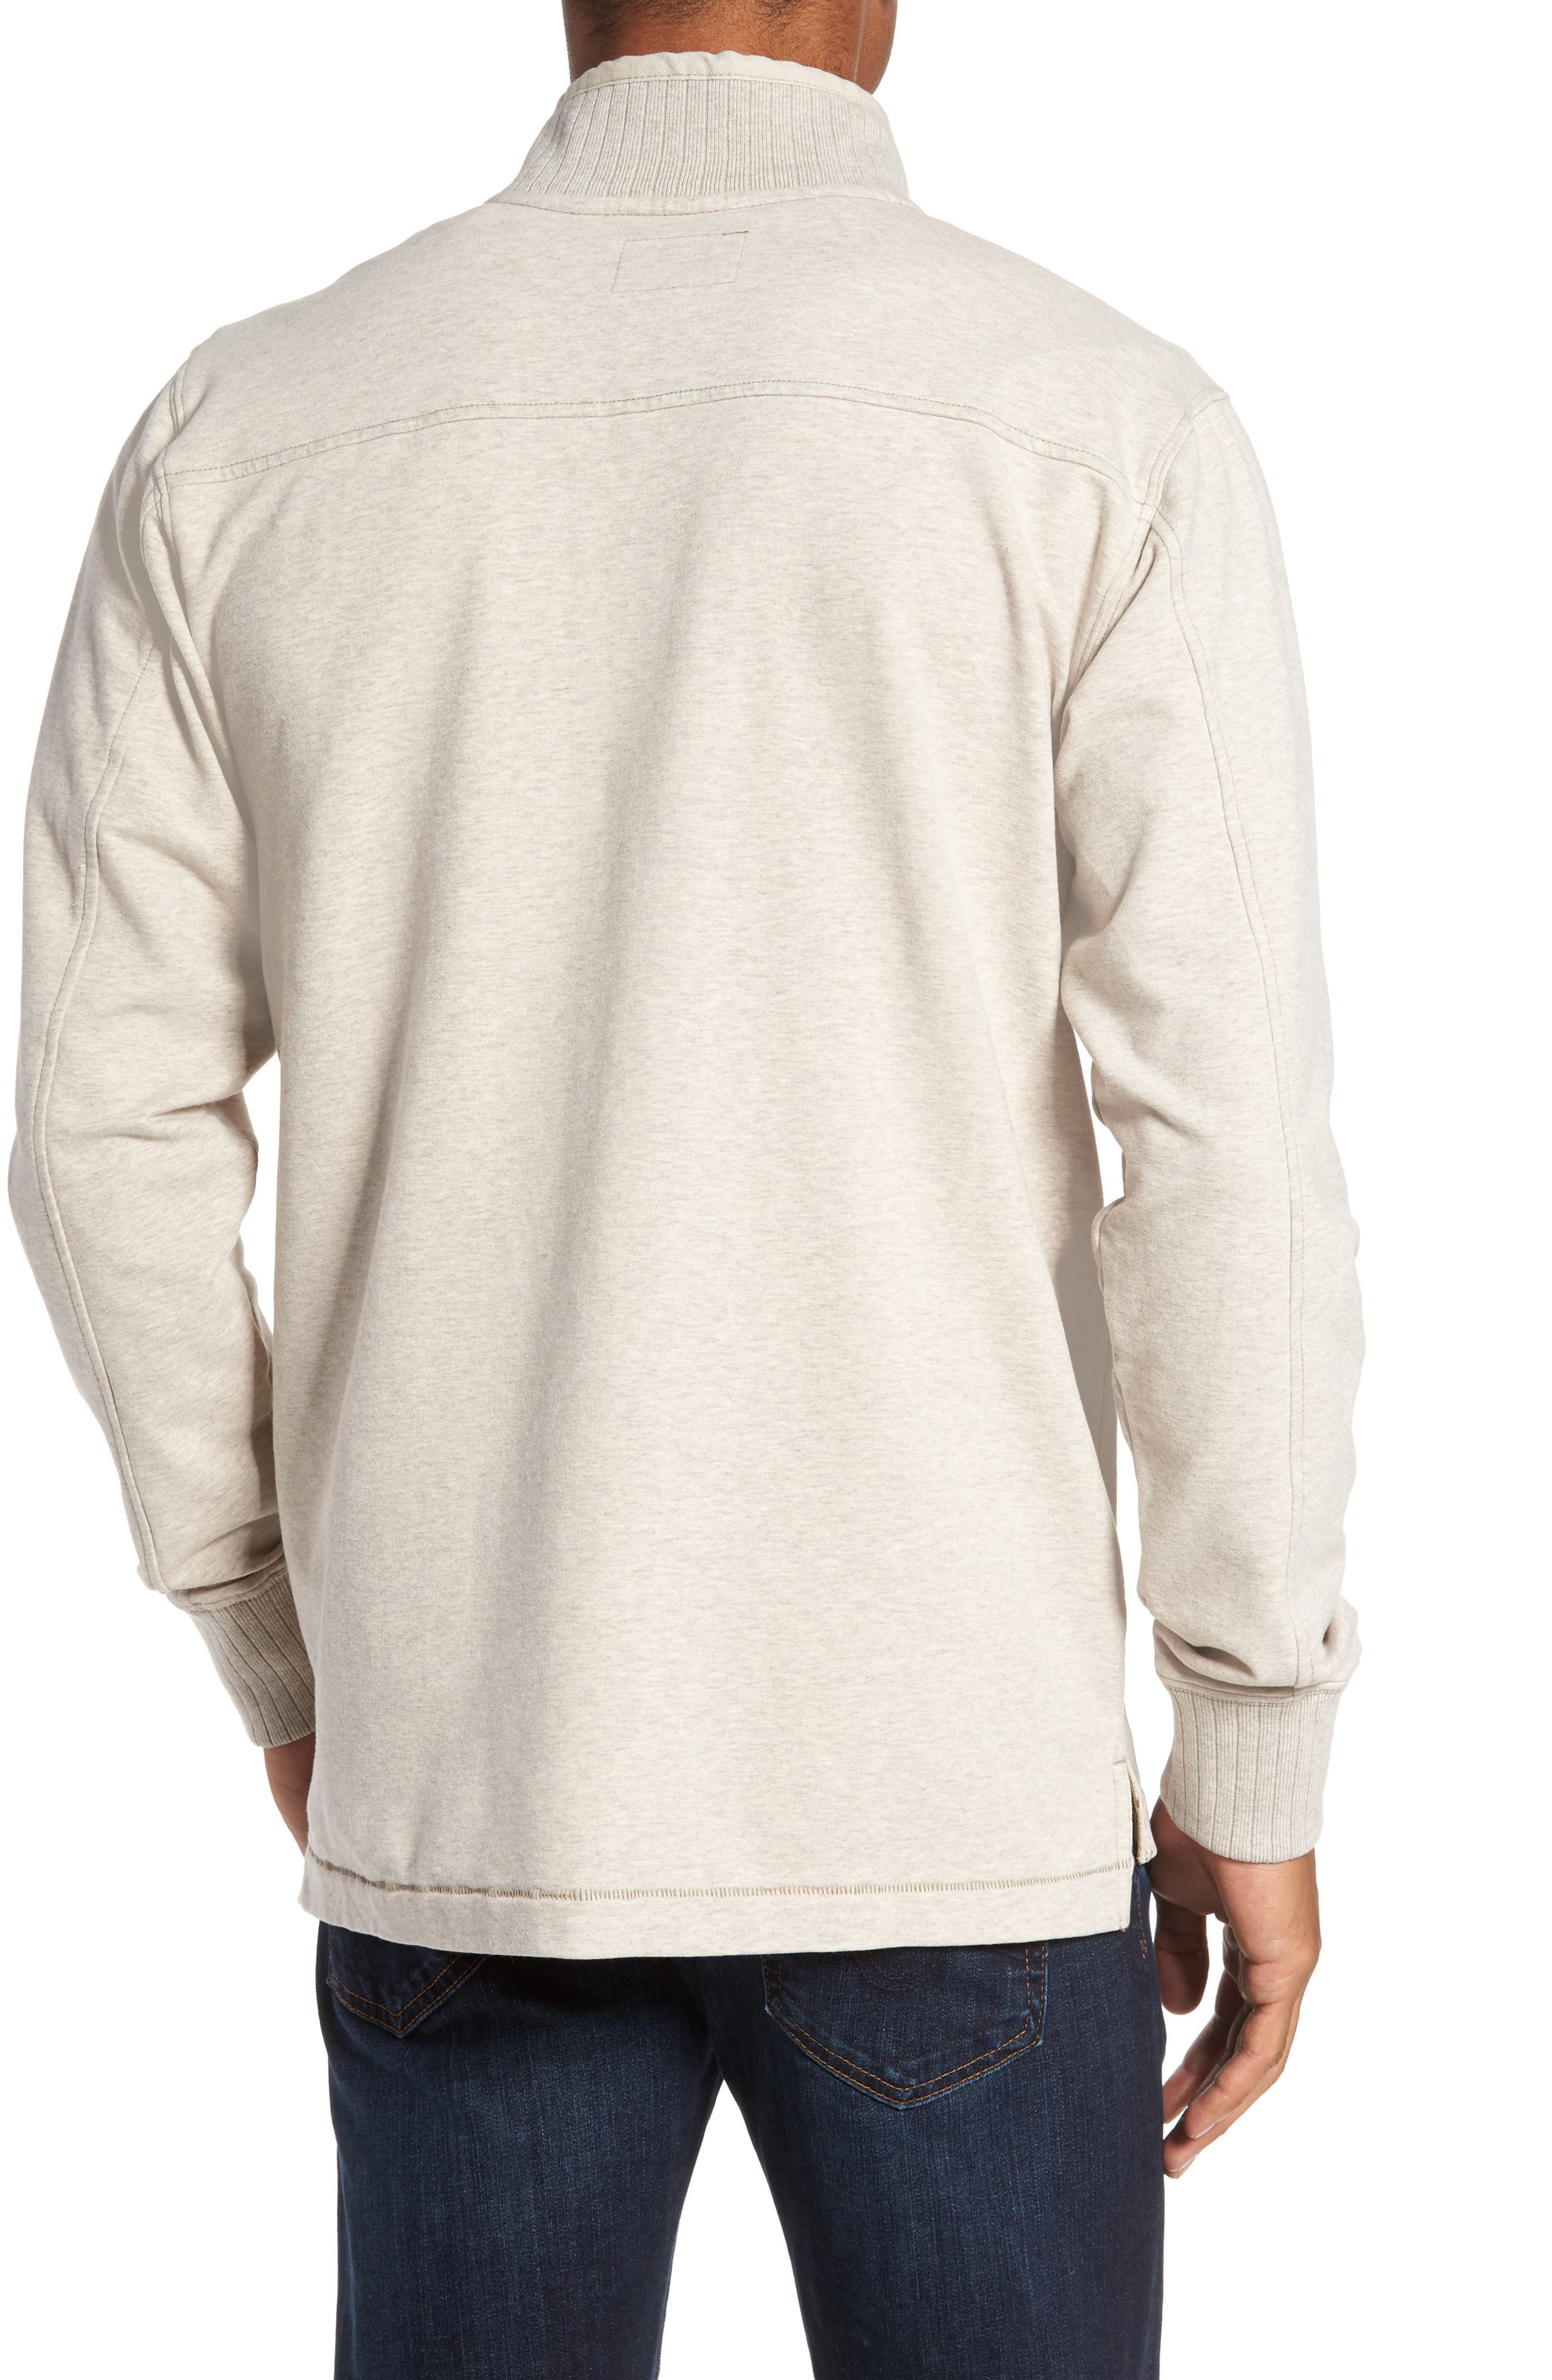 Alternate Image 2  - Jeremiah Taylor Quarter Button Pullover